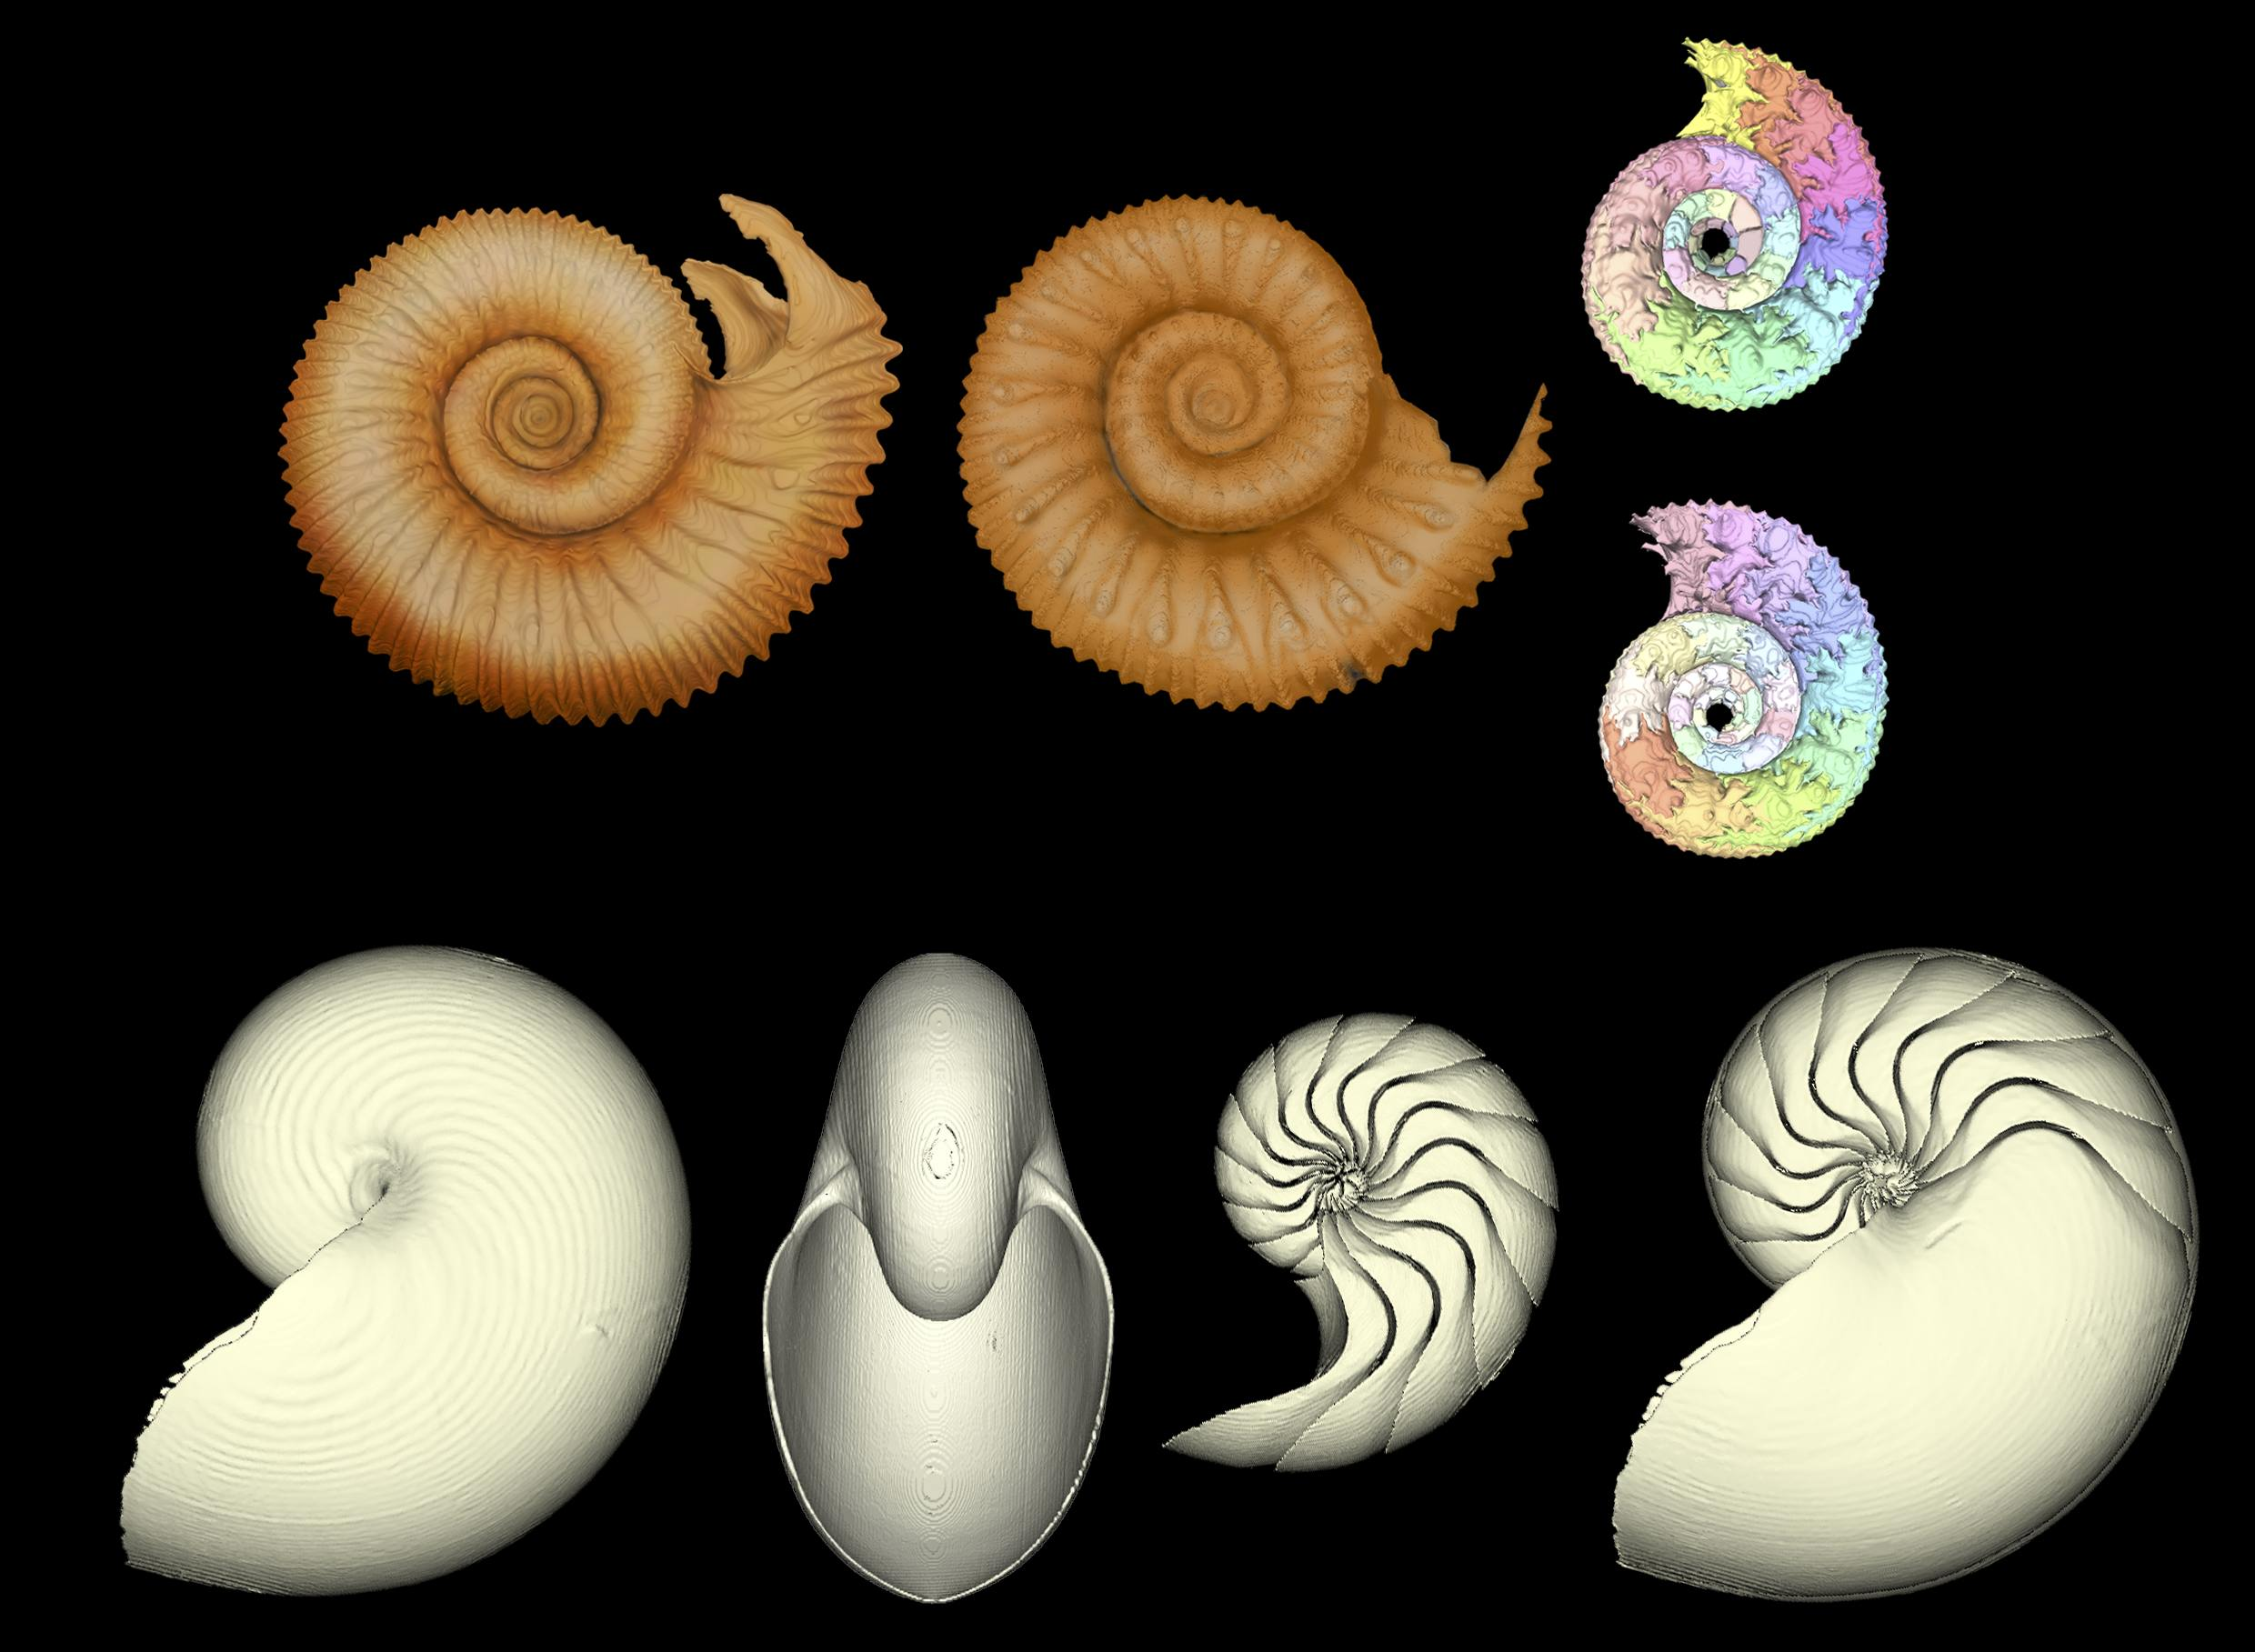 Using 3D computed tomography to measure intraspecific variation in ammonoids